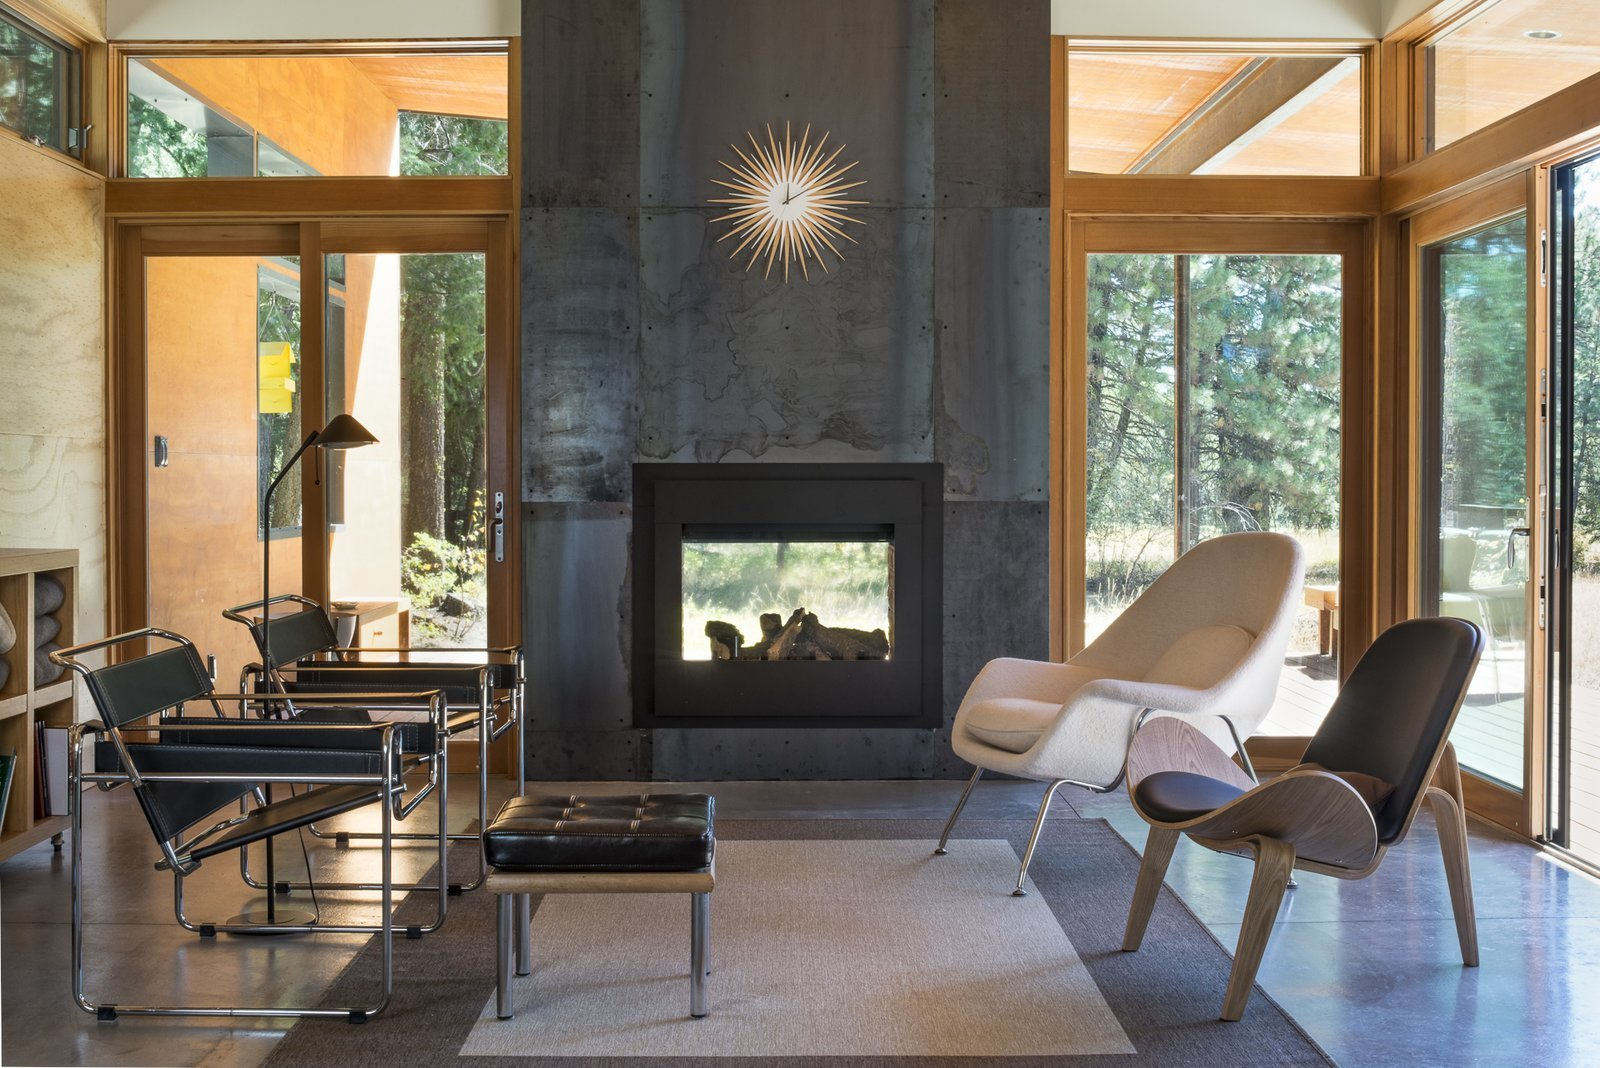 Modern Fireplace Images 10 Modern Fireplaces That Make For Inviting Interiors Dwell